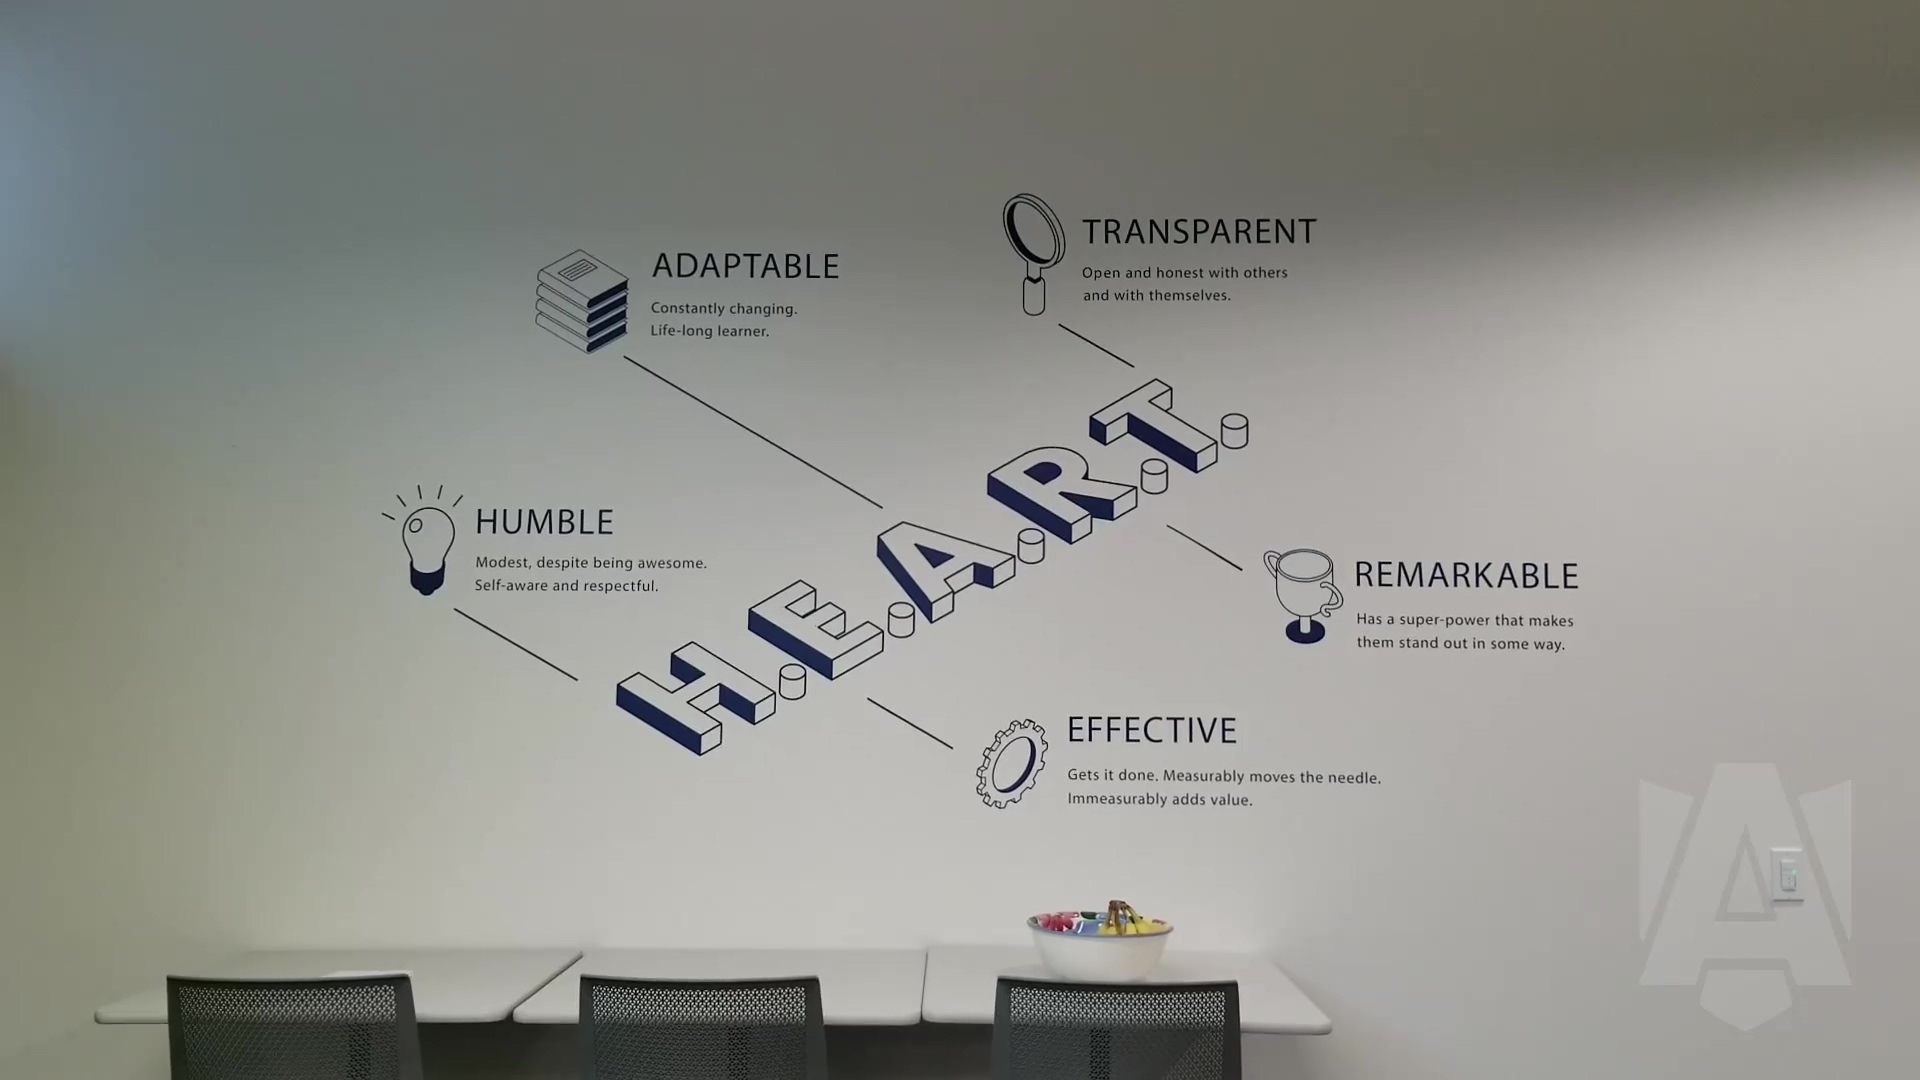 Armour Core Values - From the Lunch Room